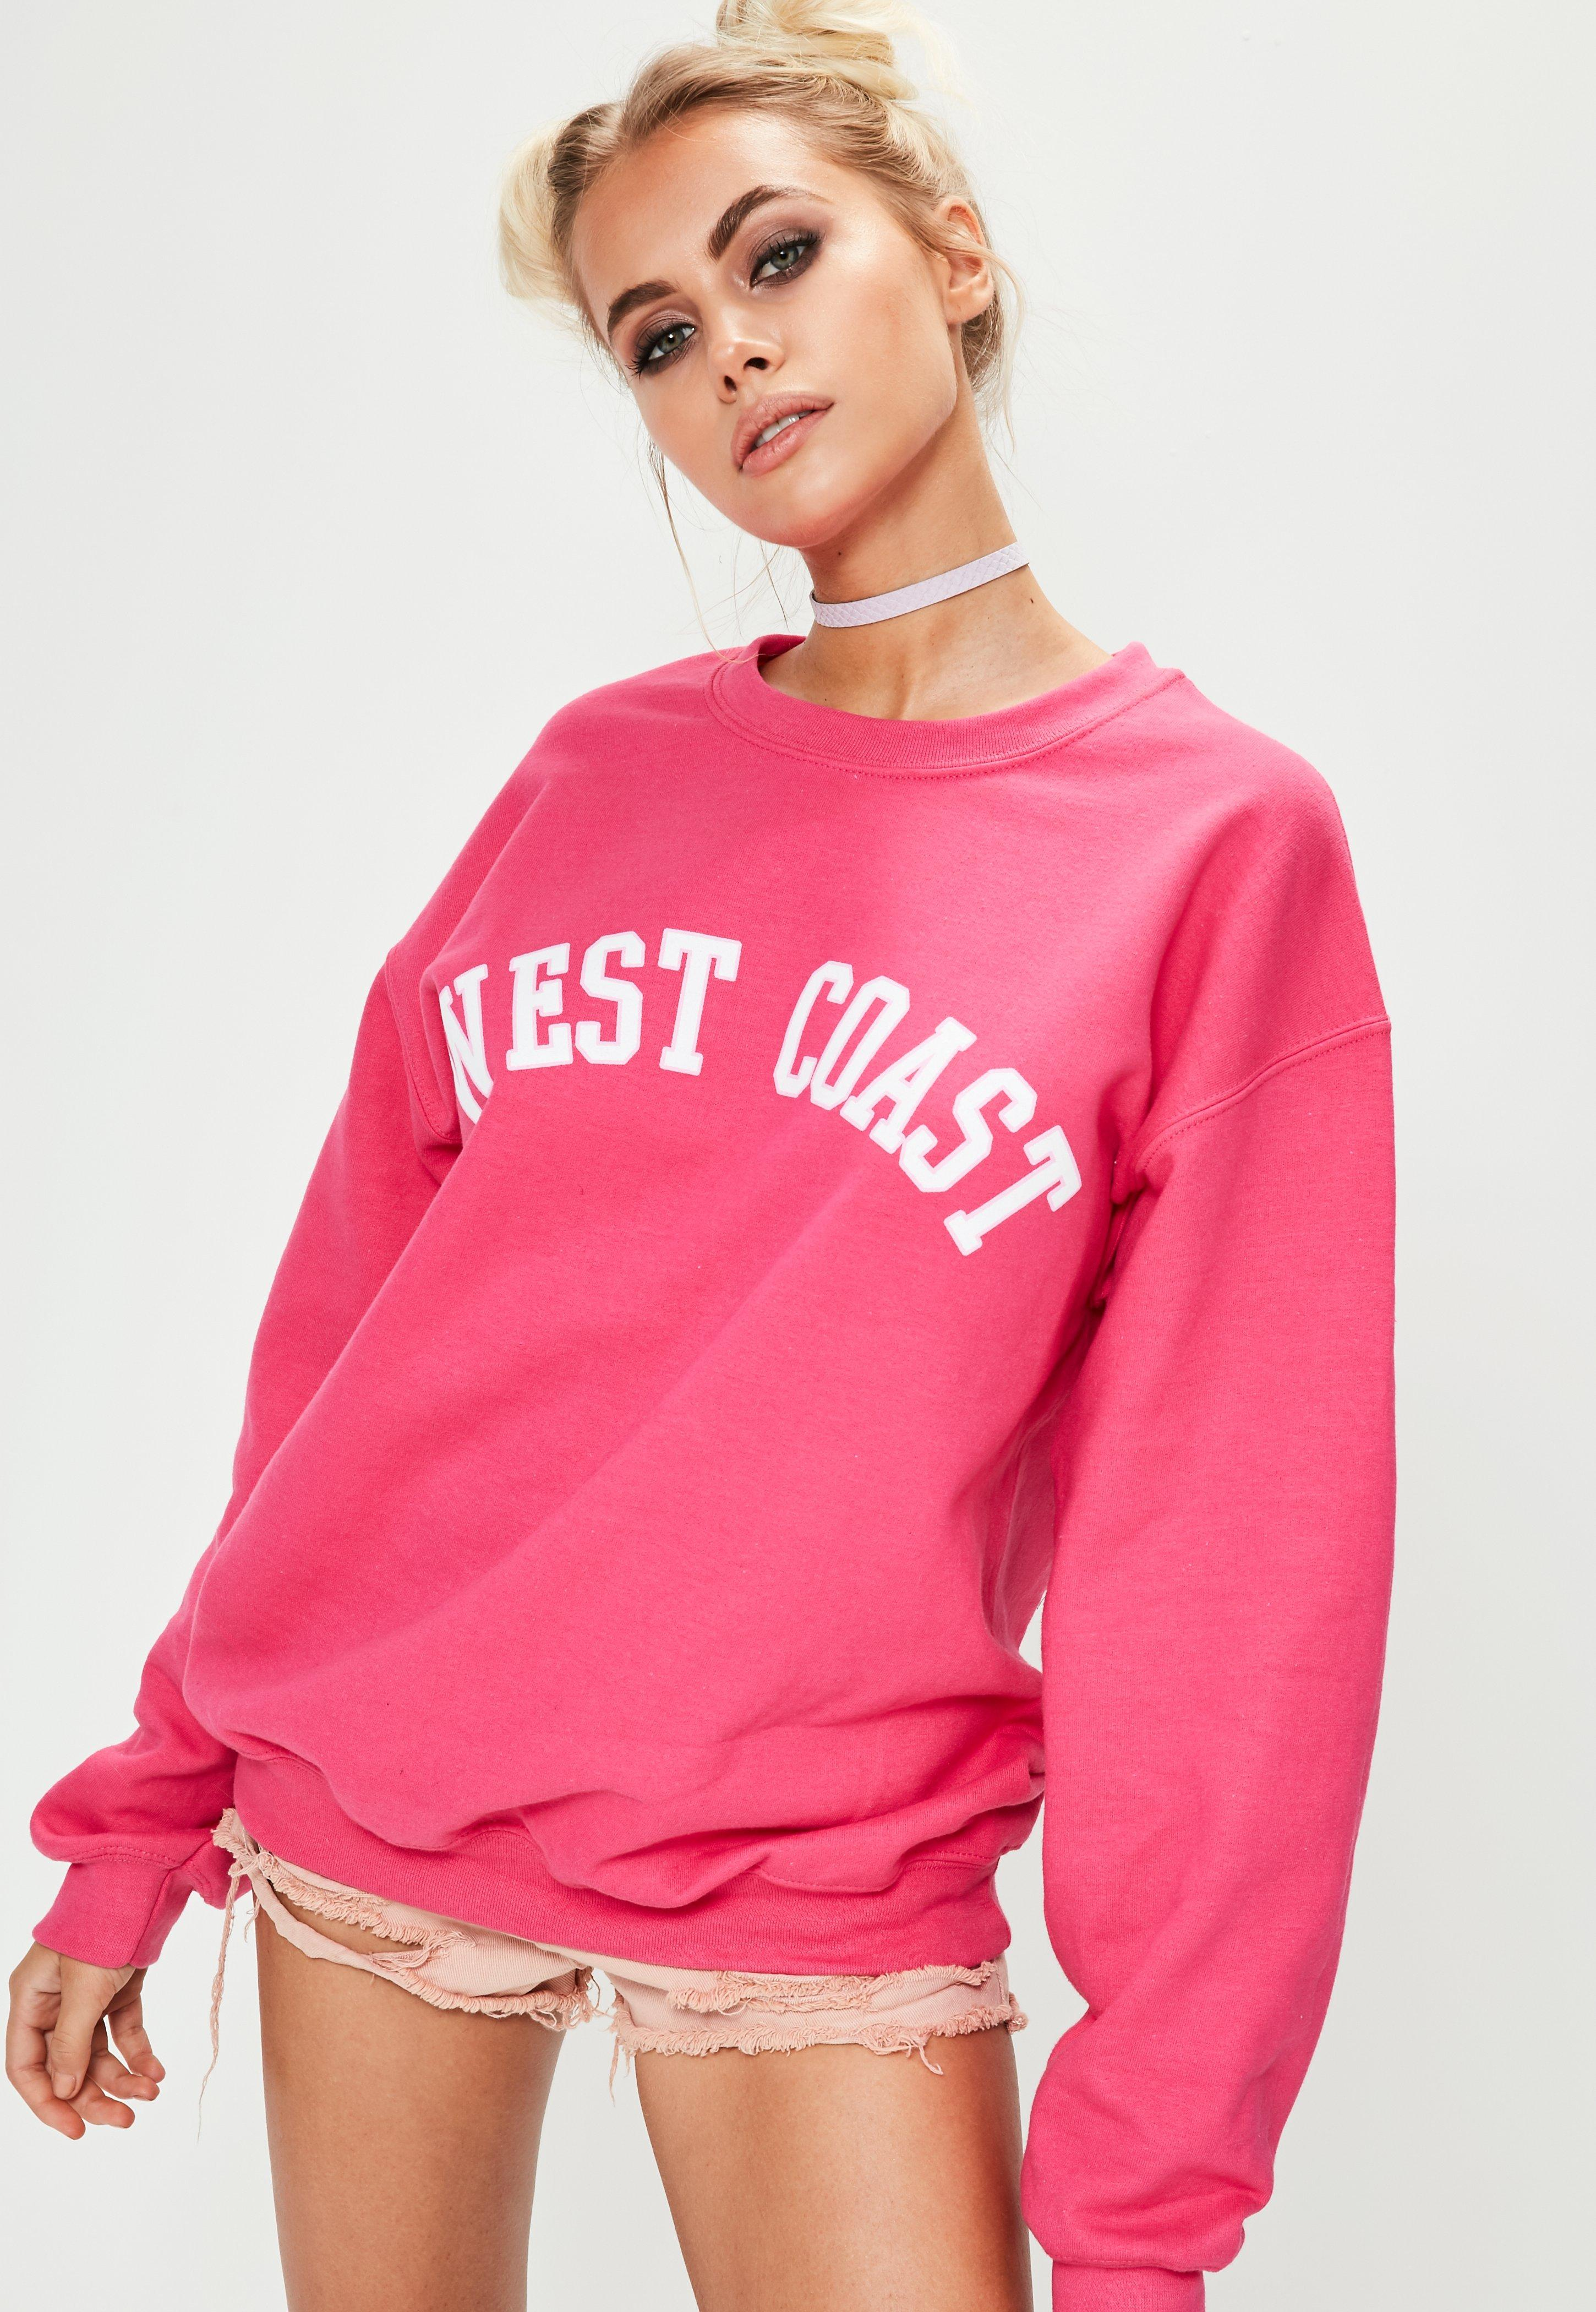 outlet store aliexpress affordable price Missguided Hot Pink West Coast Slogan Sweatshirt at £18 | love the ...